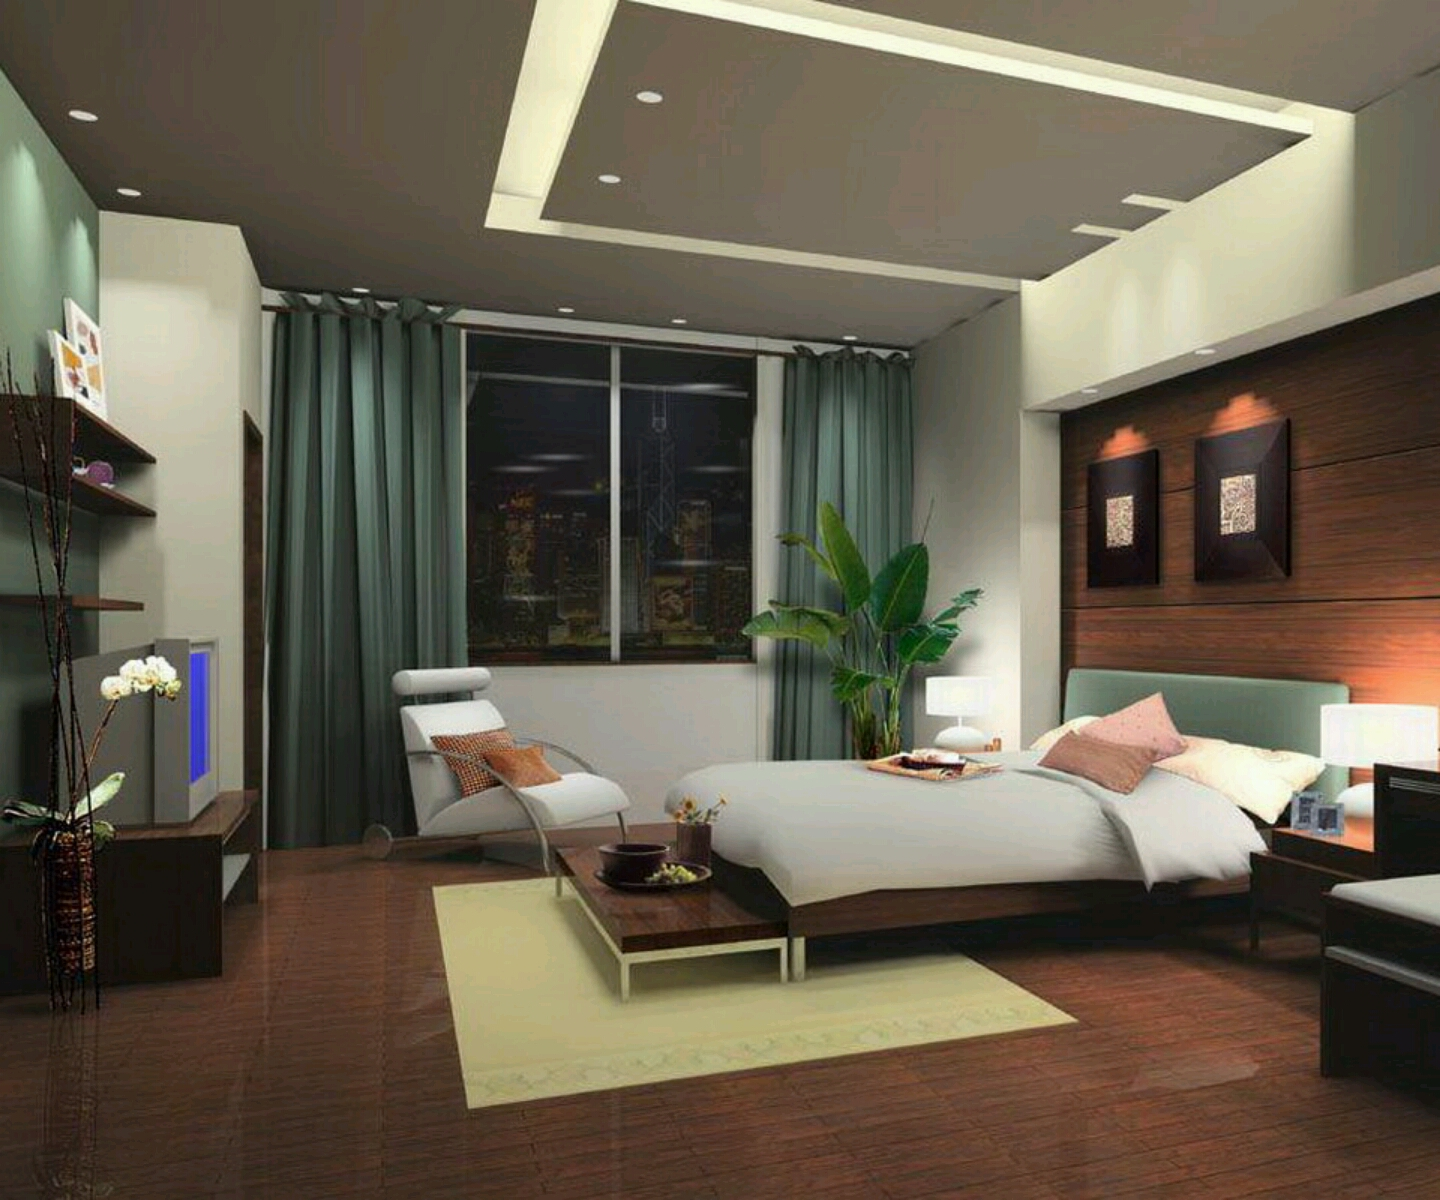 New home designs latest modern bedrooms designs best ideas for Modern house interior design bedroom